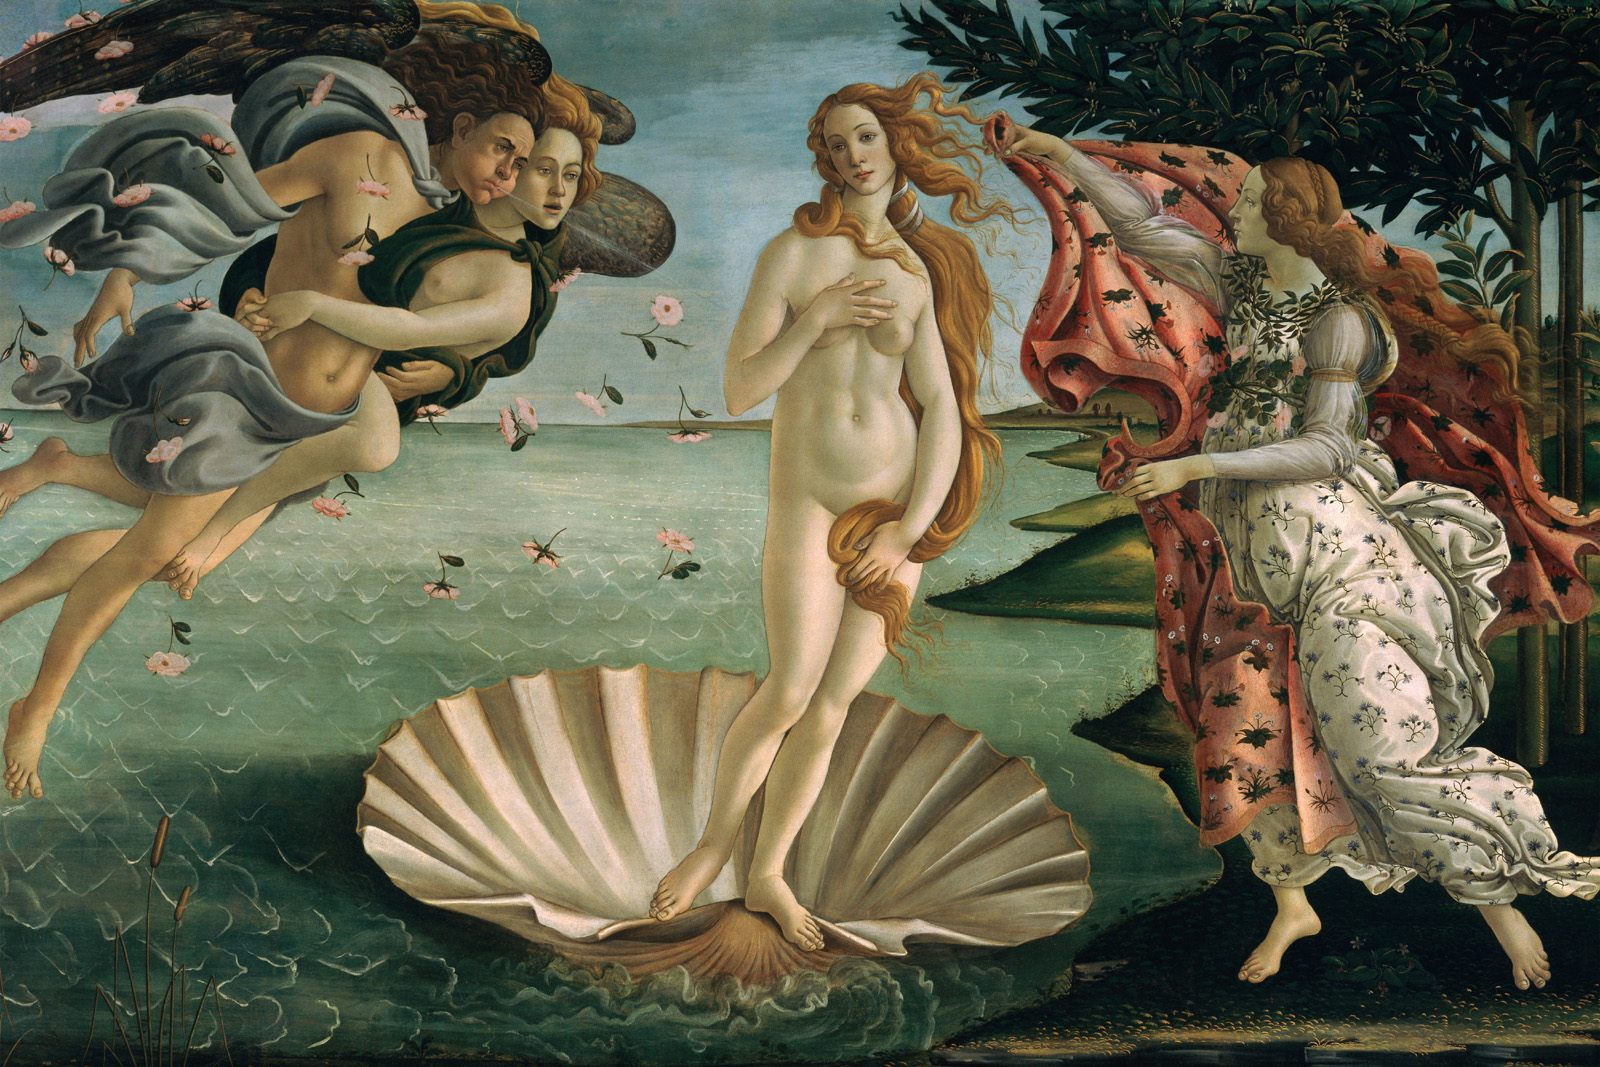 Sandro Botticelli (Alessandro di Mariano di Vanni Filipepi), The Birth of Venus (c 1486), tempera on canvas, 172.5 x 278.9 cm, Galleria degli Uffizi, Florence. WikiArt.